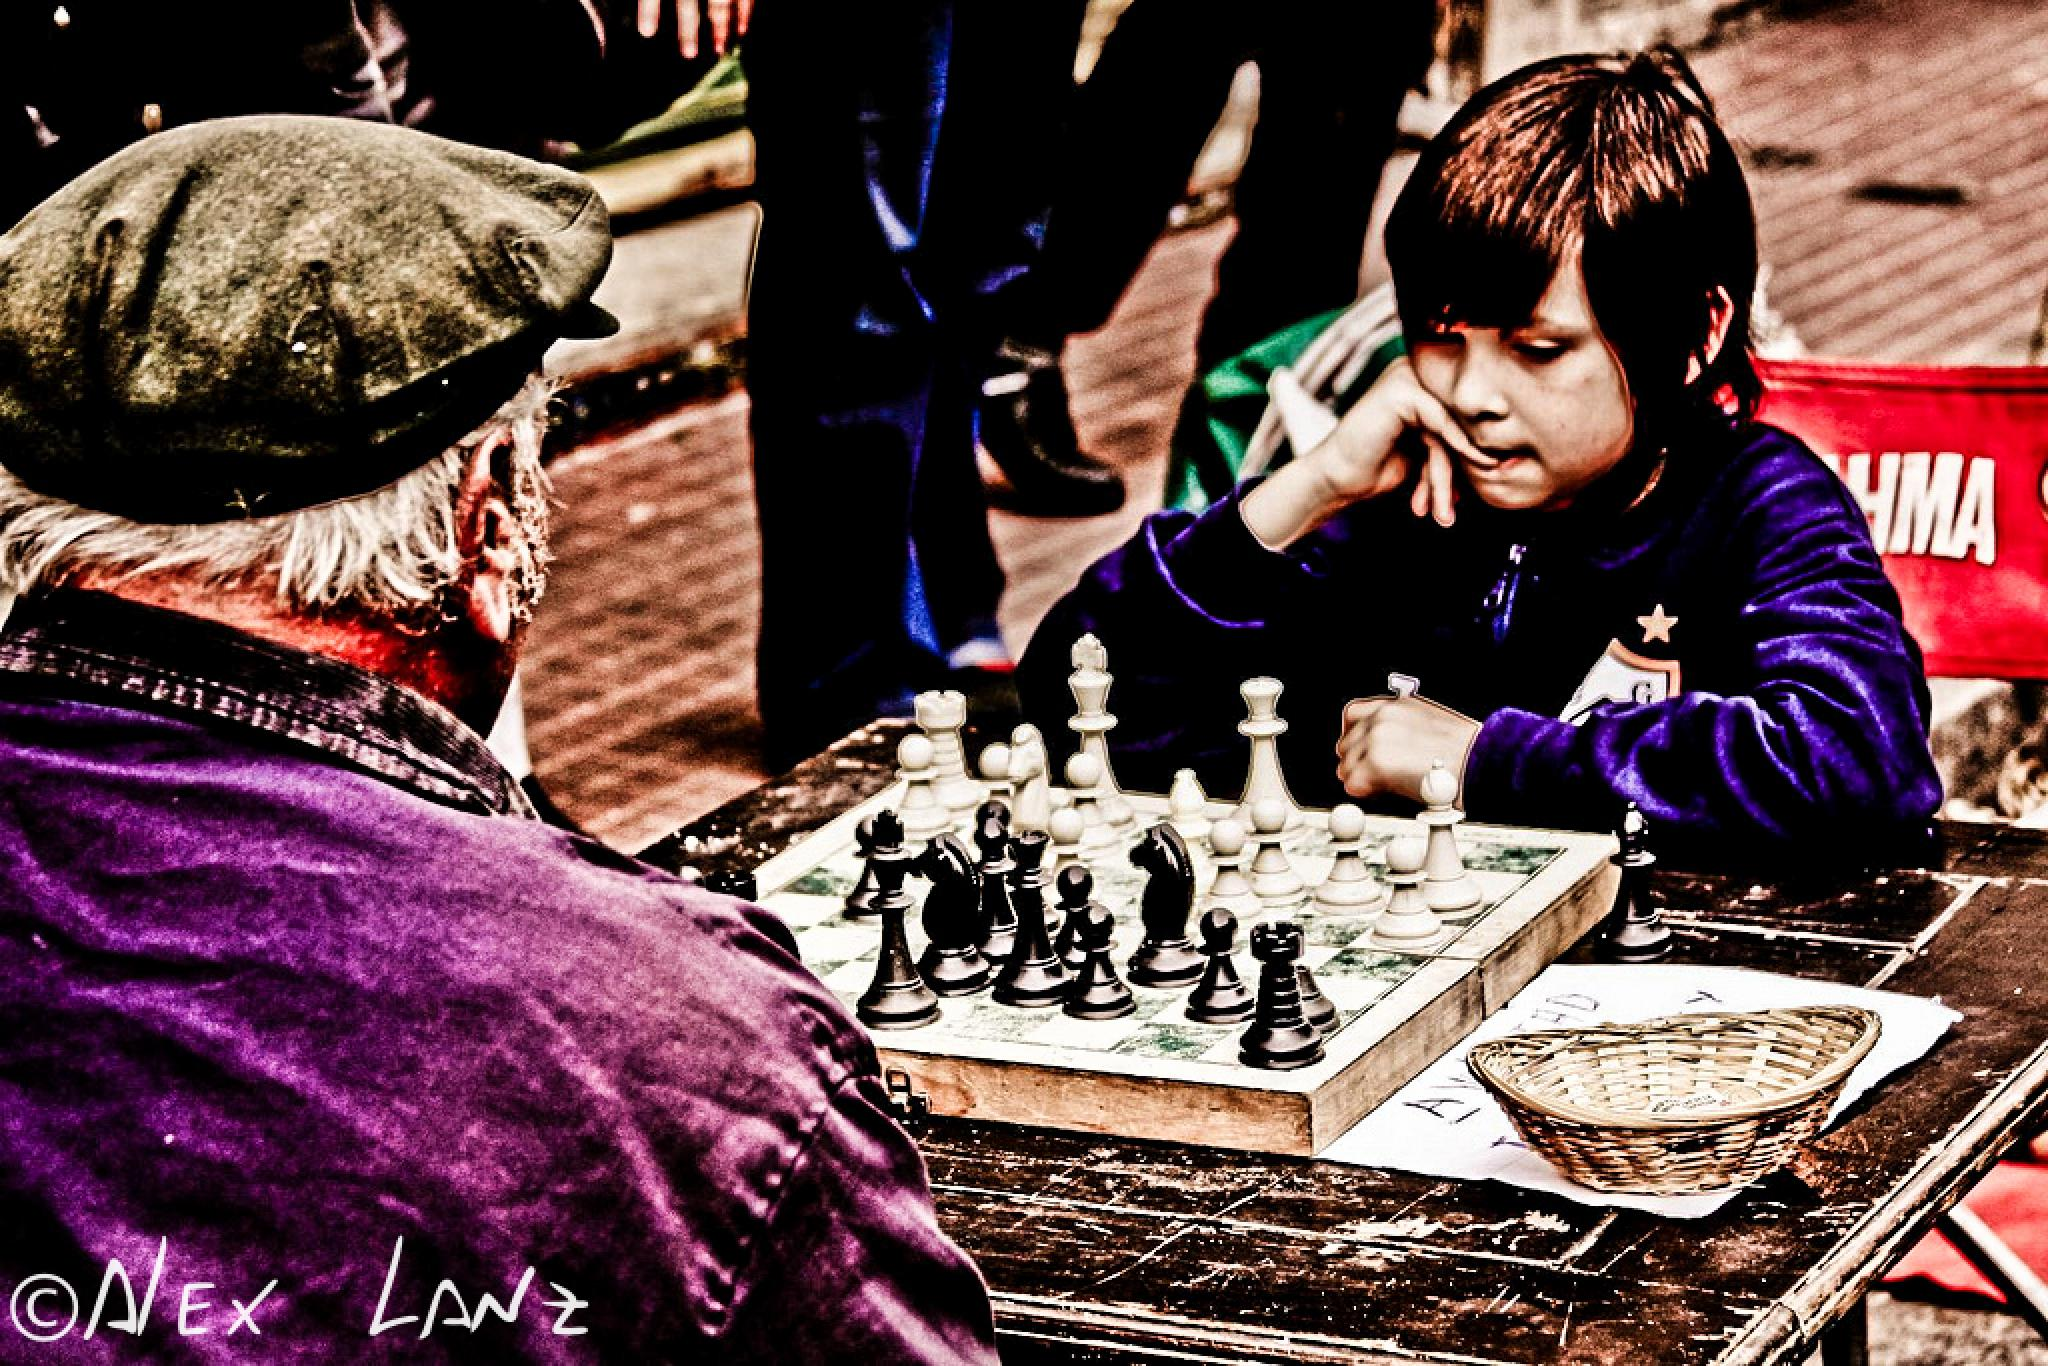 Boy vs Old man by Alex Lanz